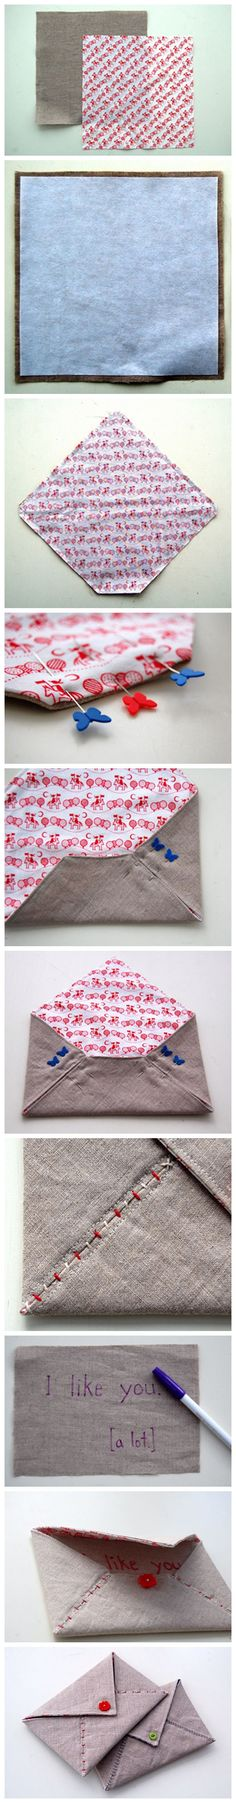 DIY: fabric envelope. I would like to enlarge to create a large clutch!